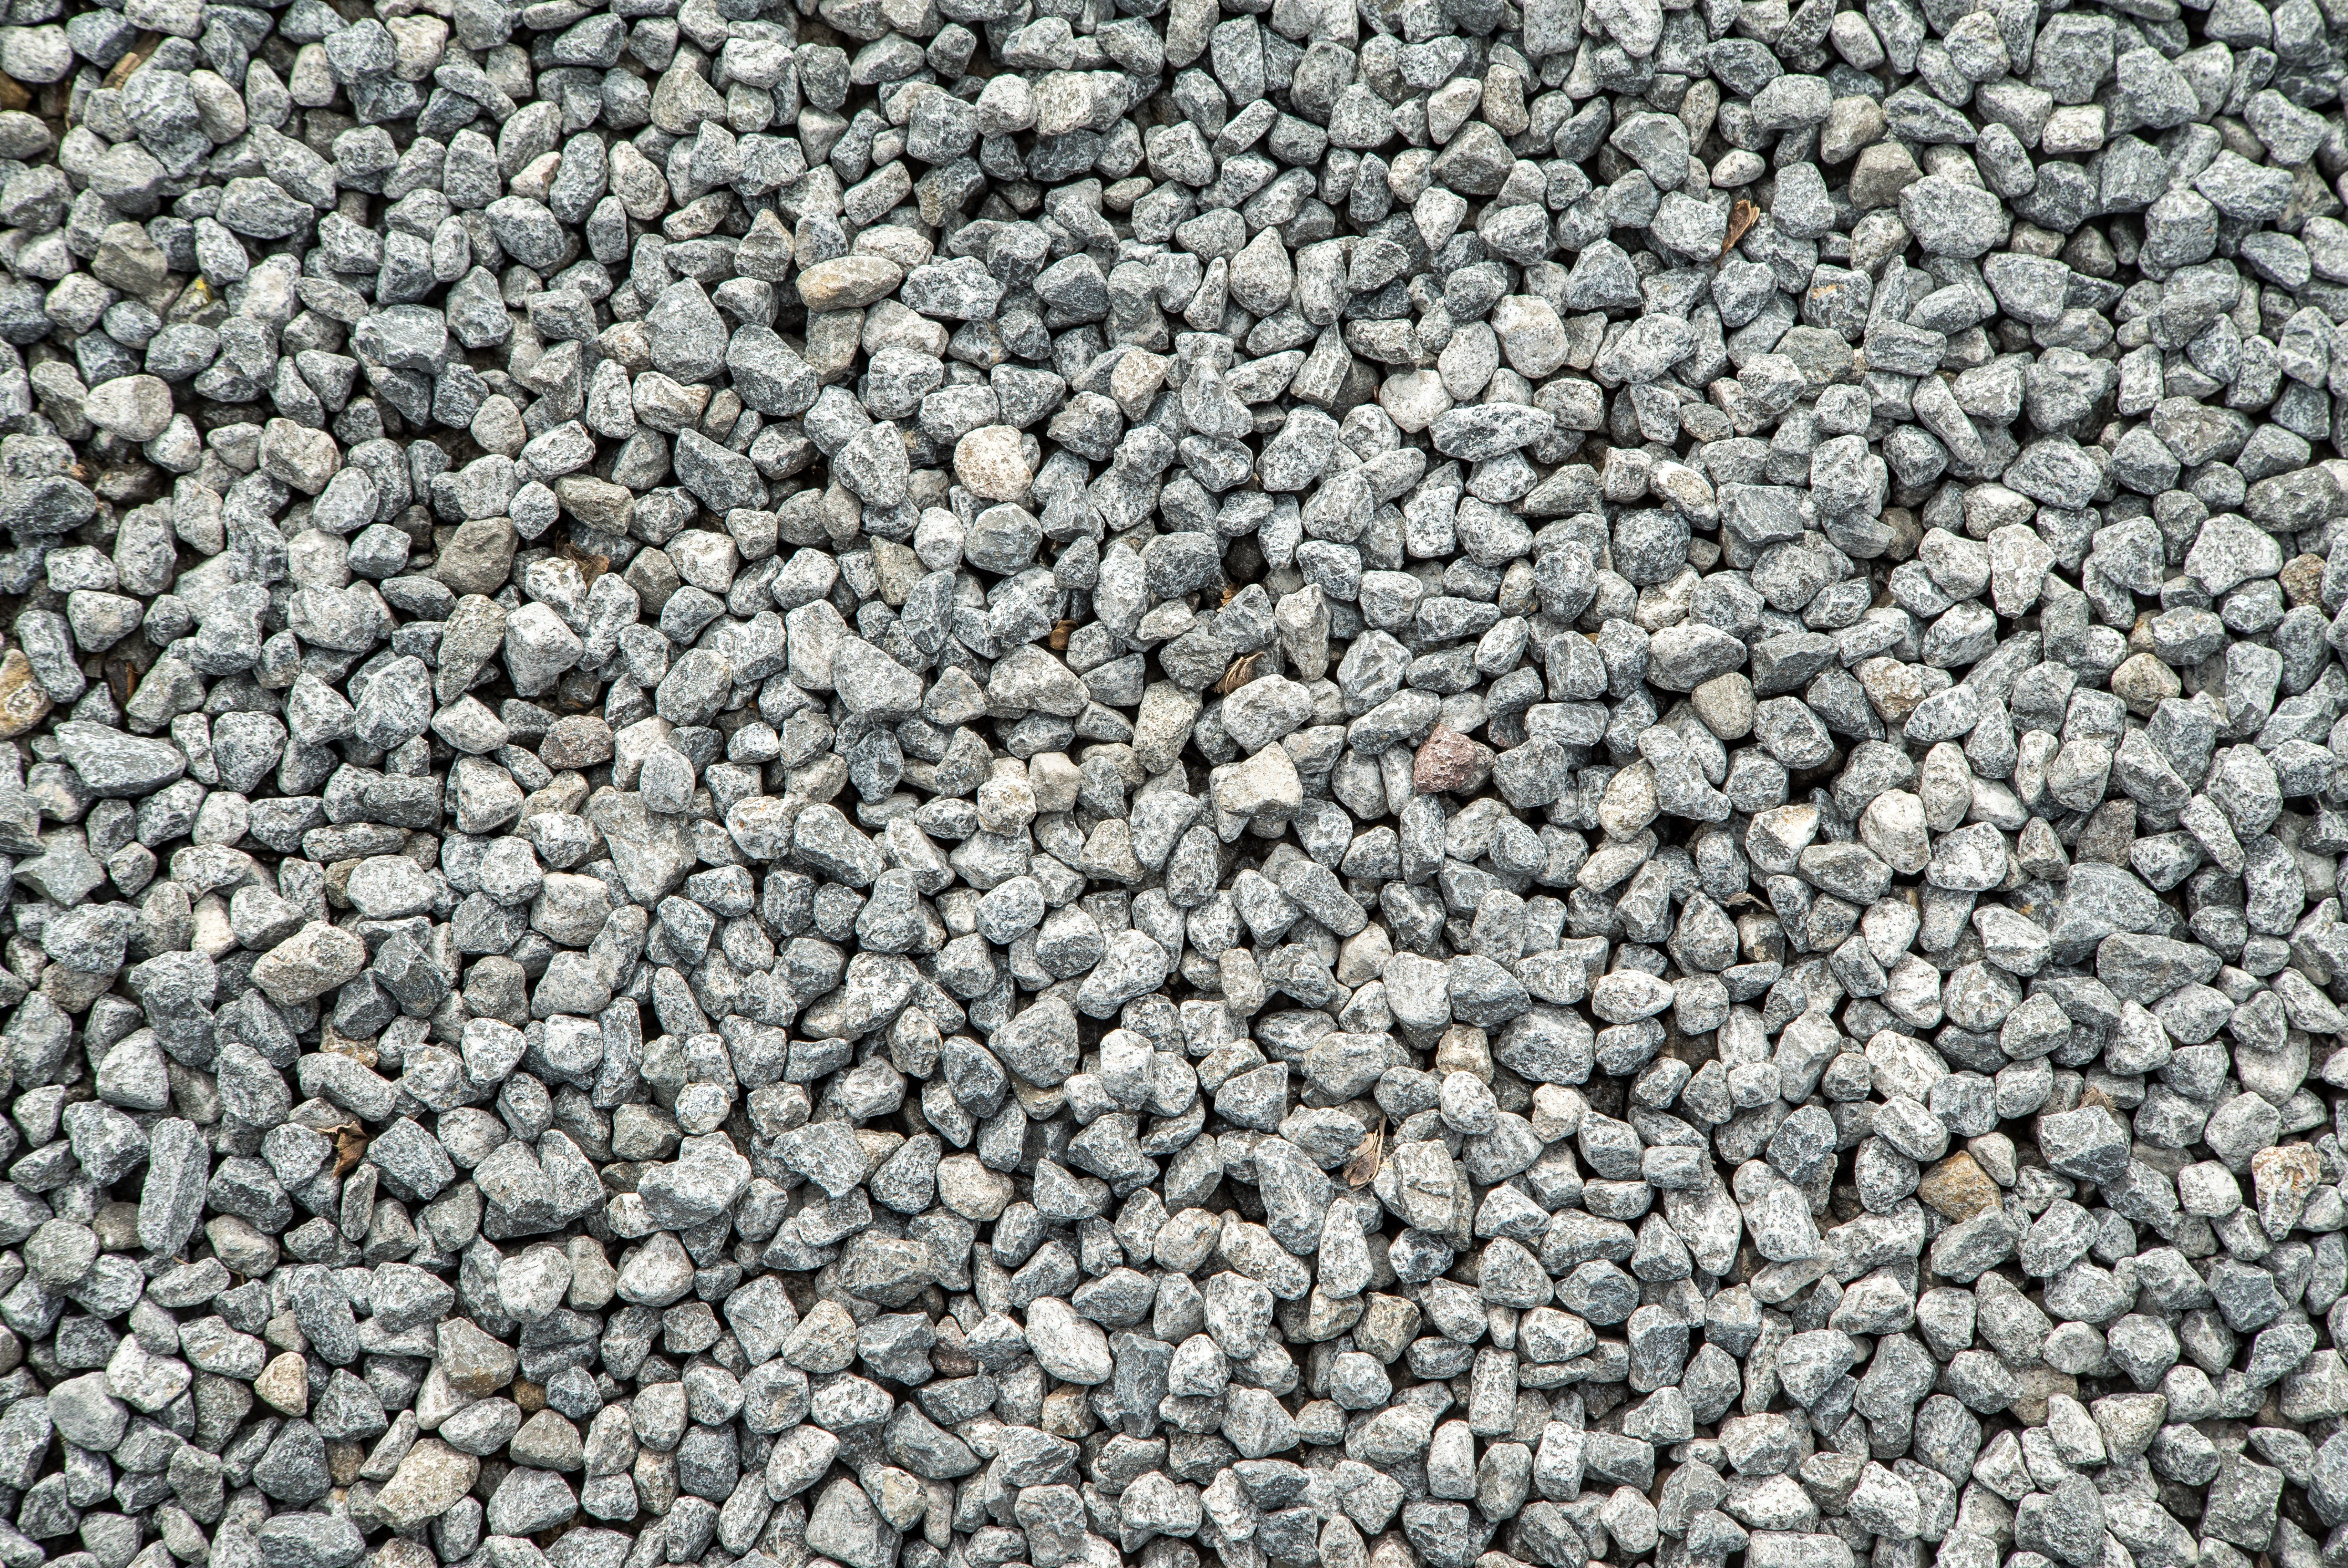 Aggregate Sample A